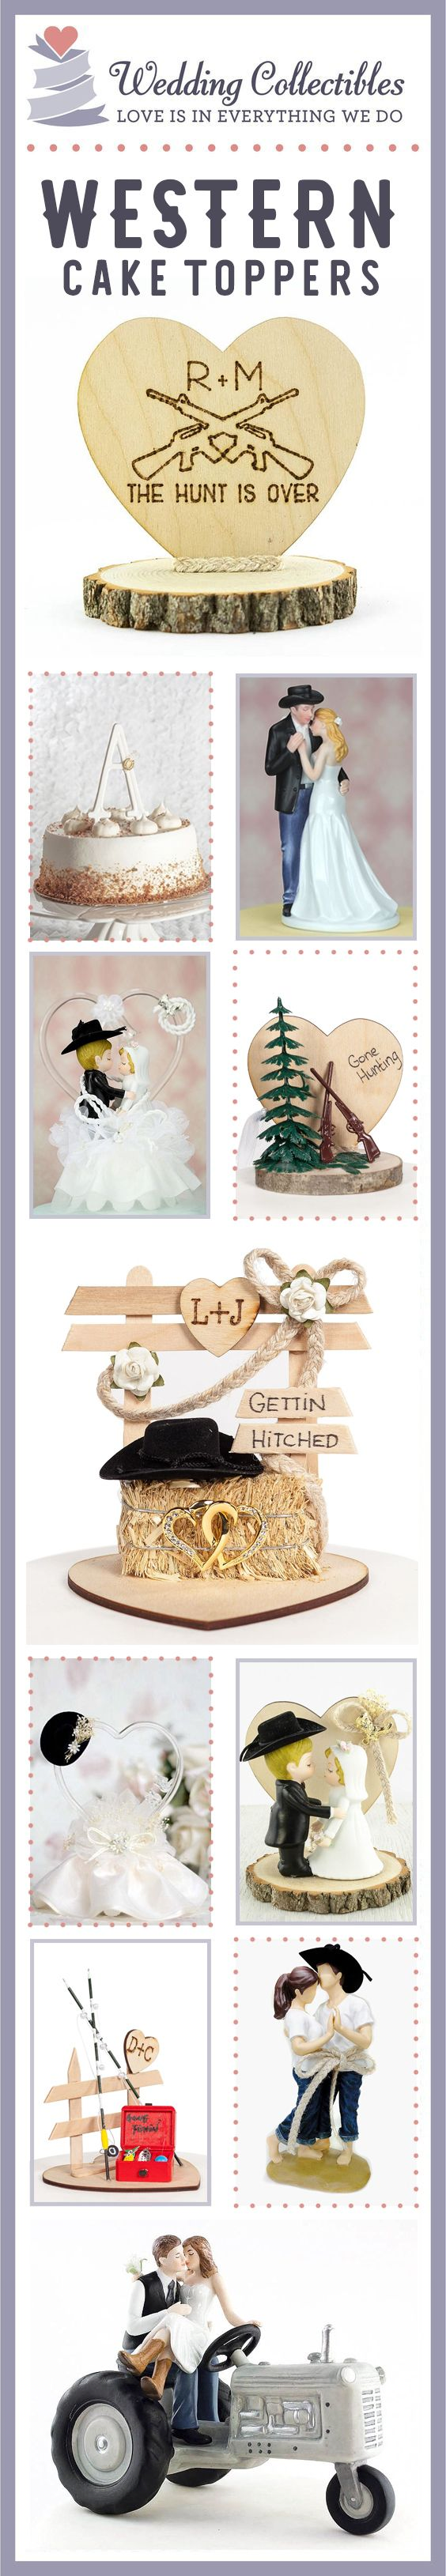 Find the perfect cake topper for your special day. Browse our unique and customizable rustic & western themed wedding cake toppers! View more here: http://www.weddingcollectibles.com/Western/